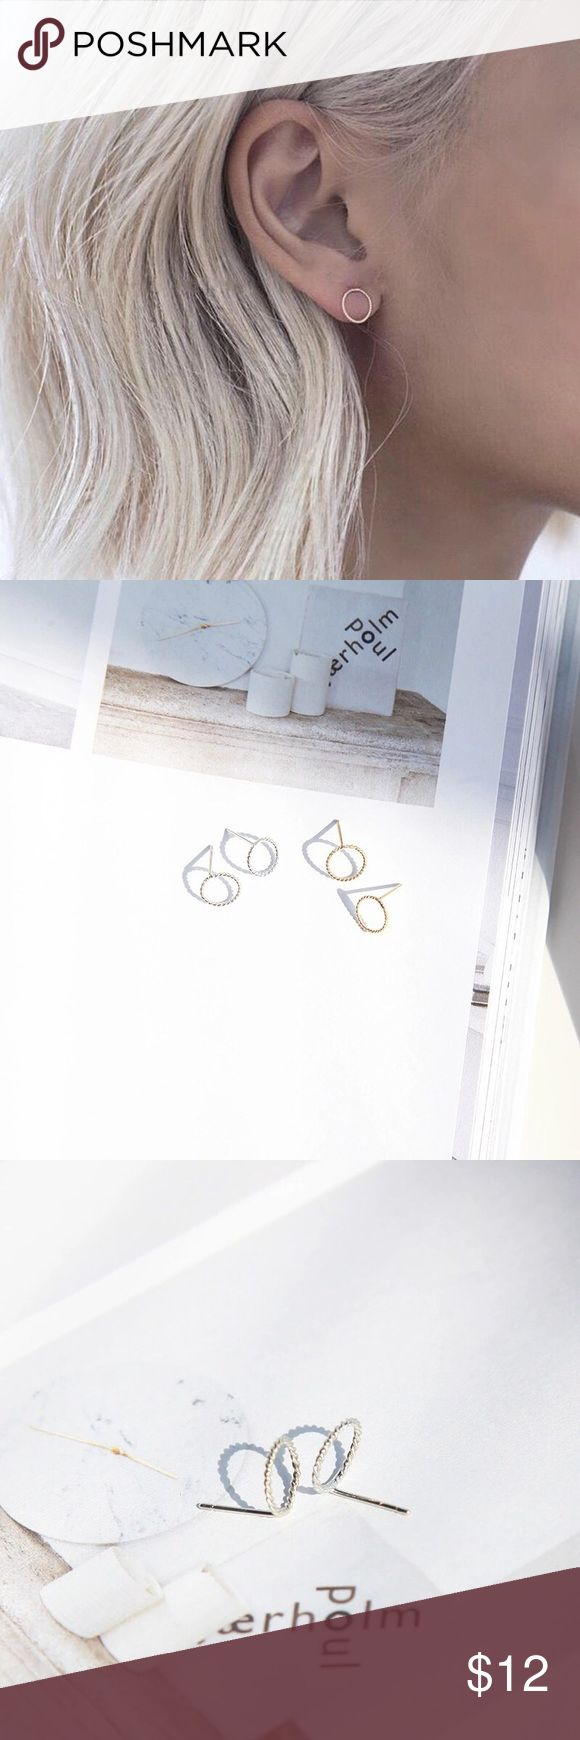 Silver circle earring Minimalism, chic and simple. Diameter 8mm Jewelry Earrings